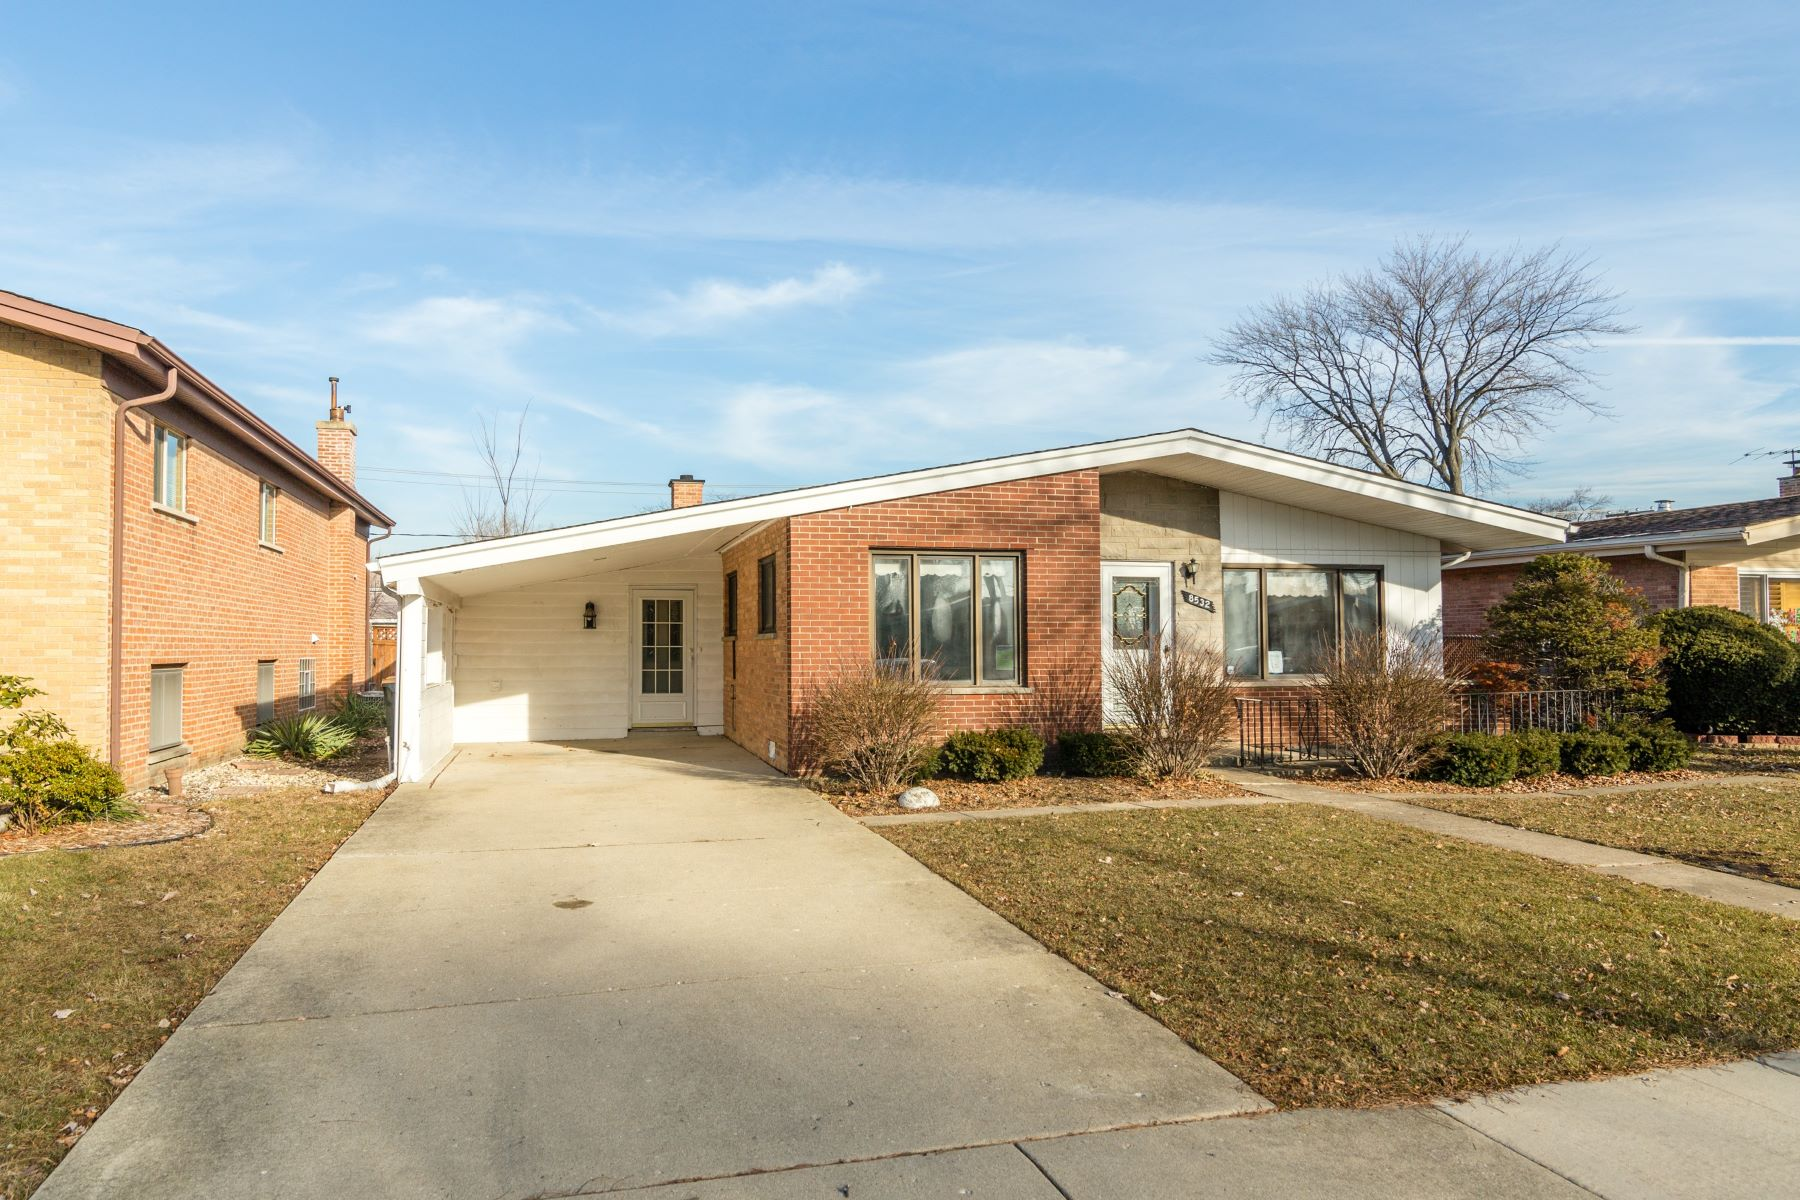 Single Family Home for Sale at Excellent Potential 8532 W Clara Drive Niles, Illinois 60714 United States